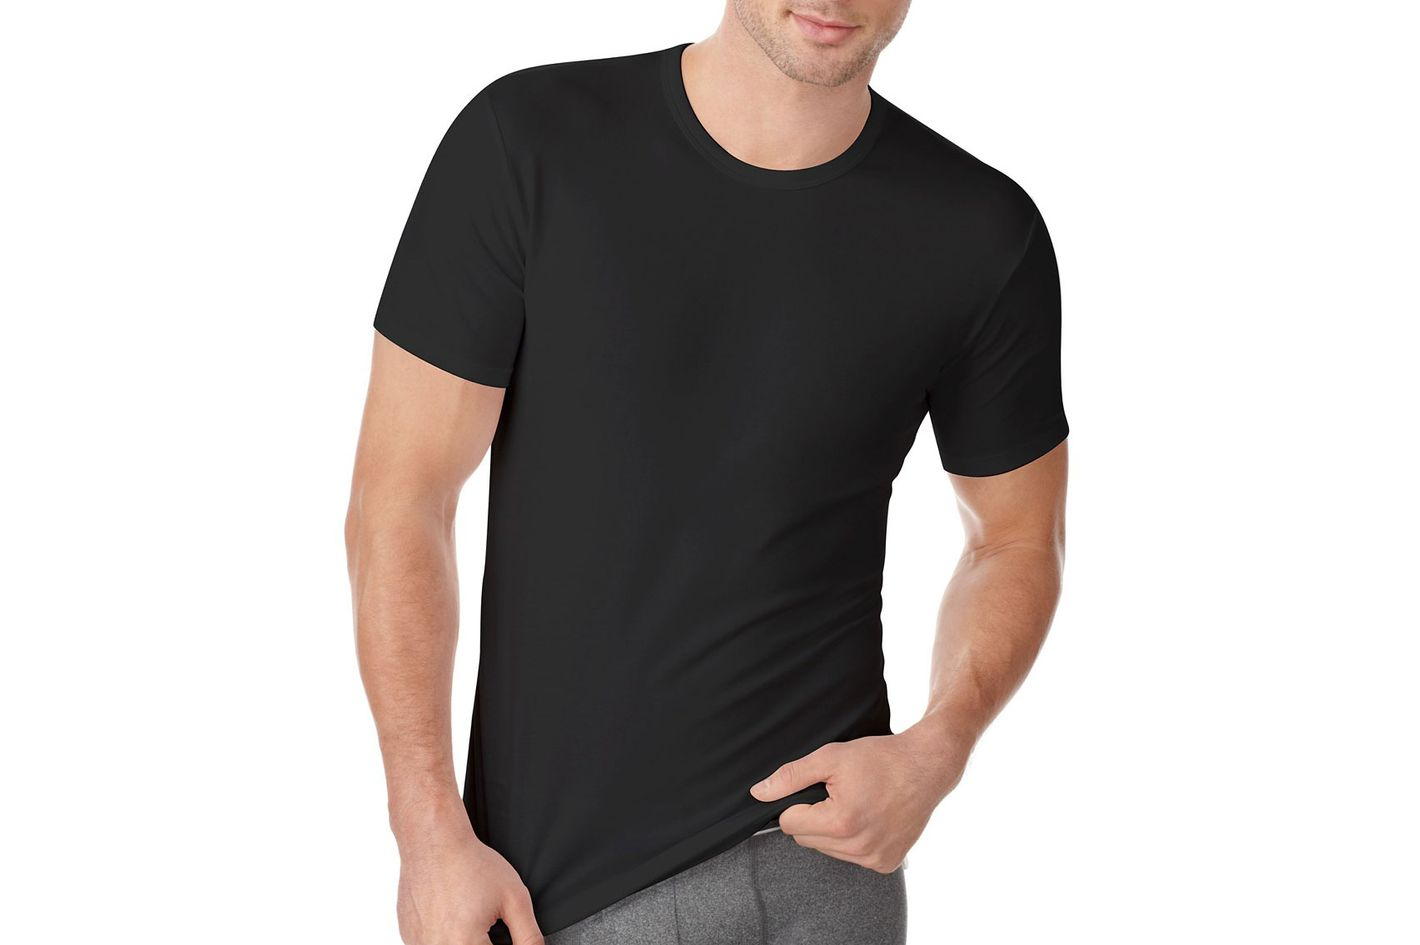 f6572ddf28a3 Calvin Klein Men's Cotton Stretch Crew-neck Undershirt 2-Pack